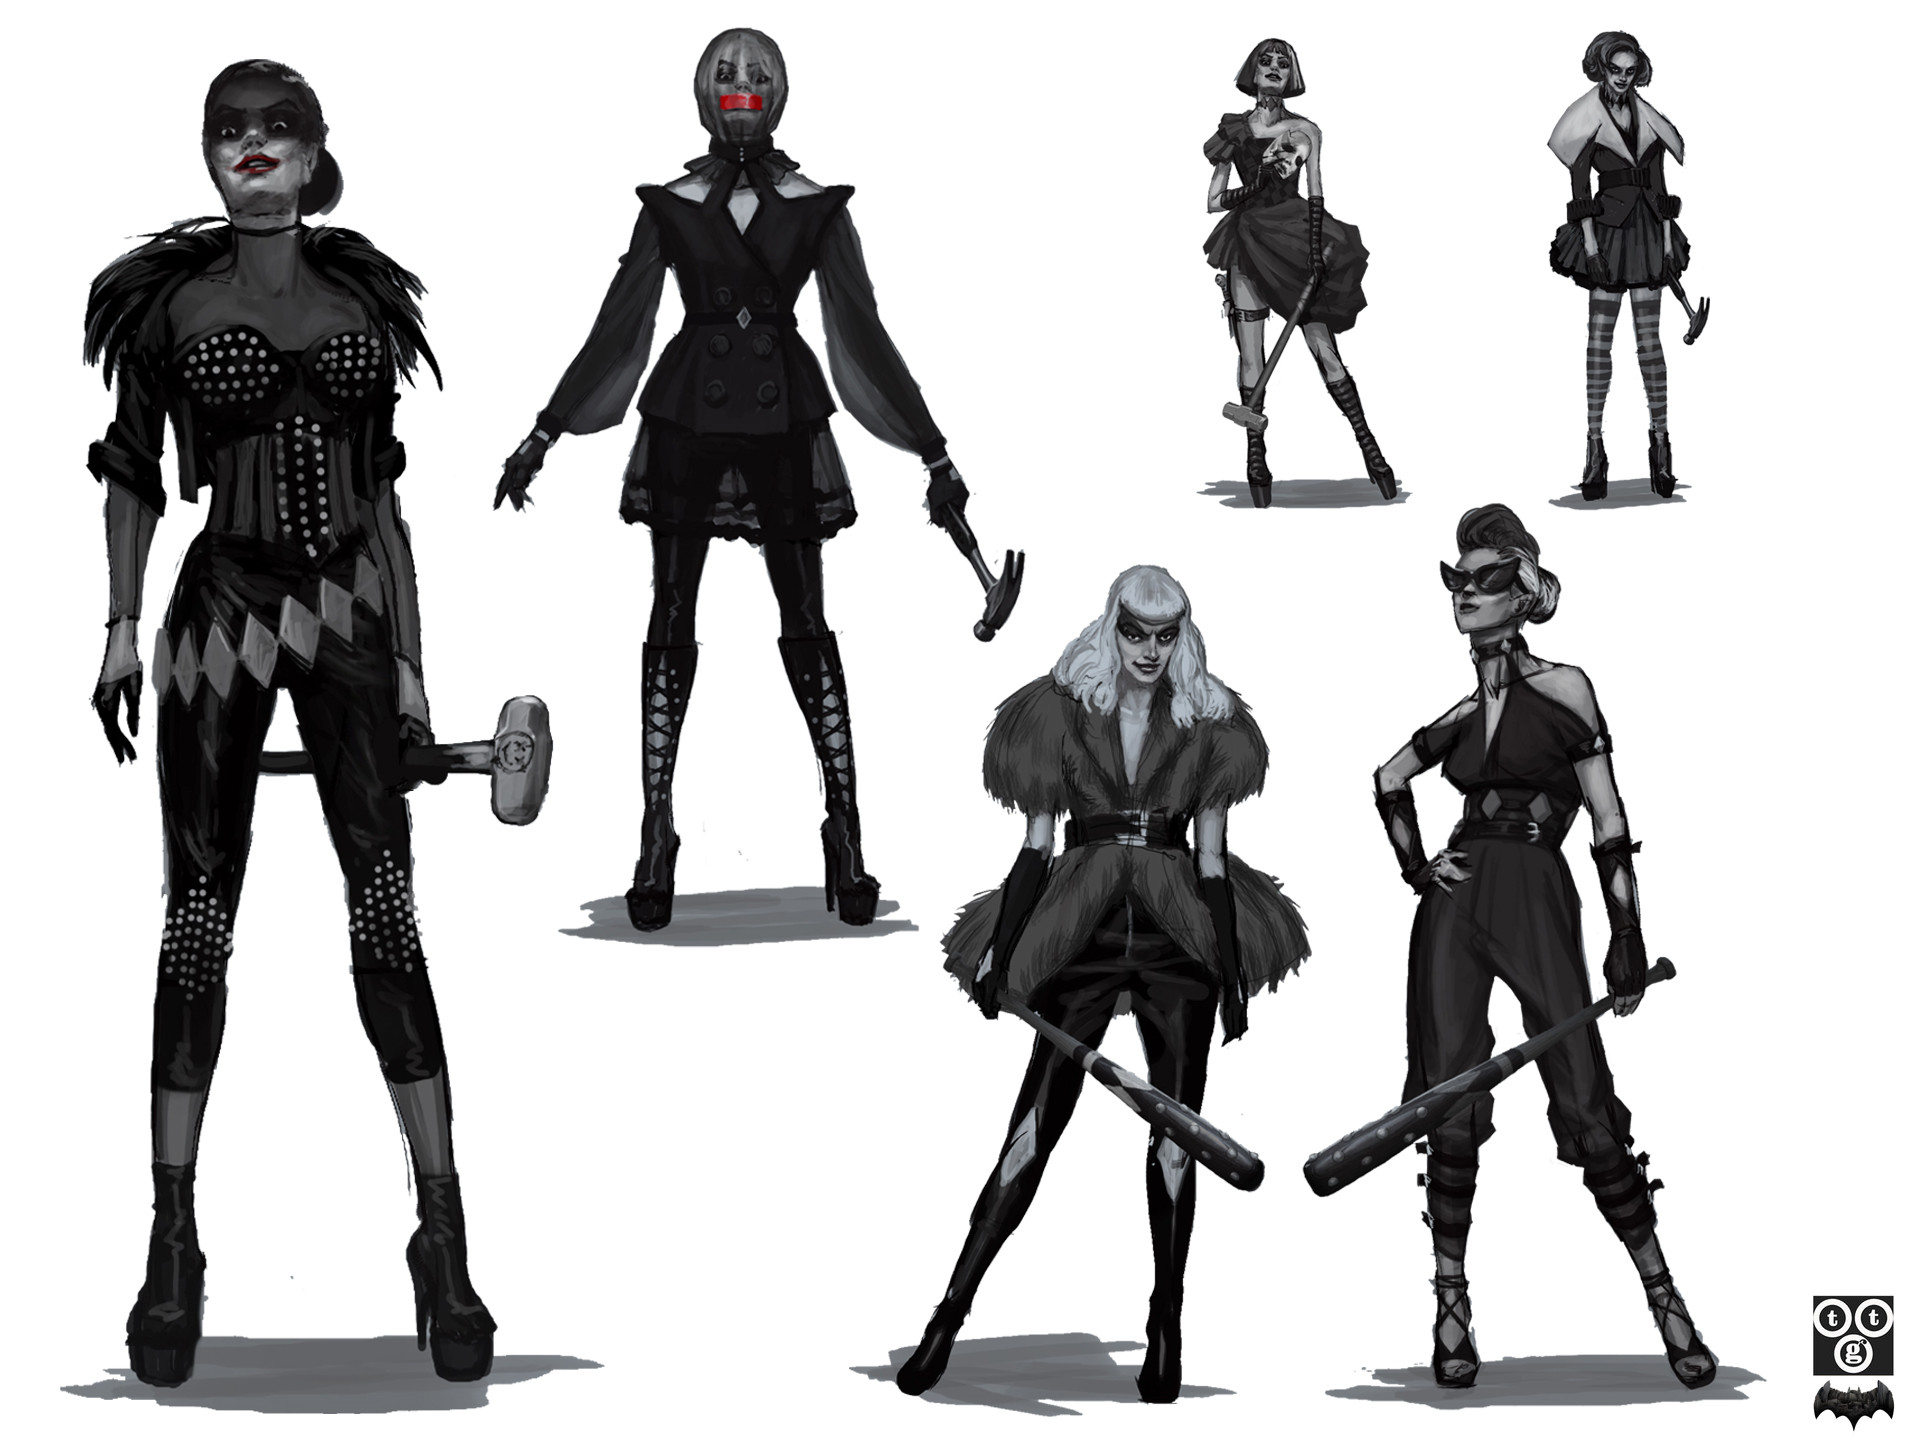 Rough Harley concepts